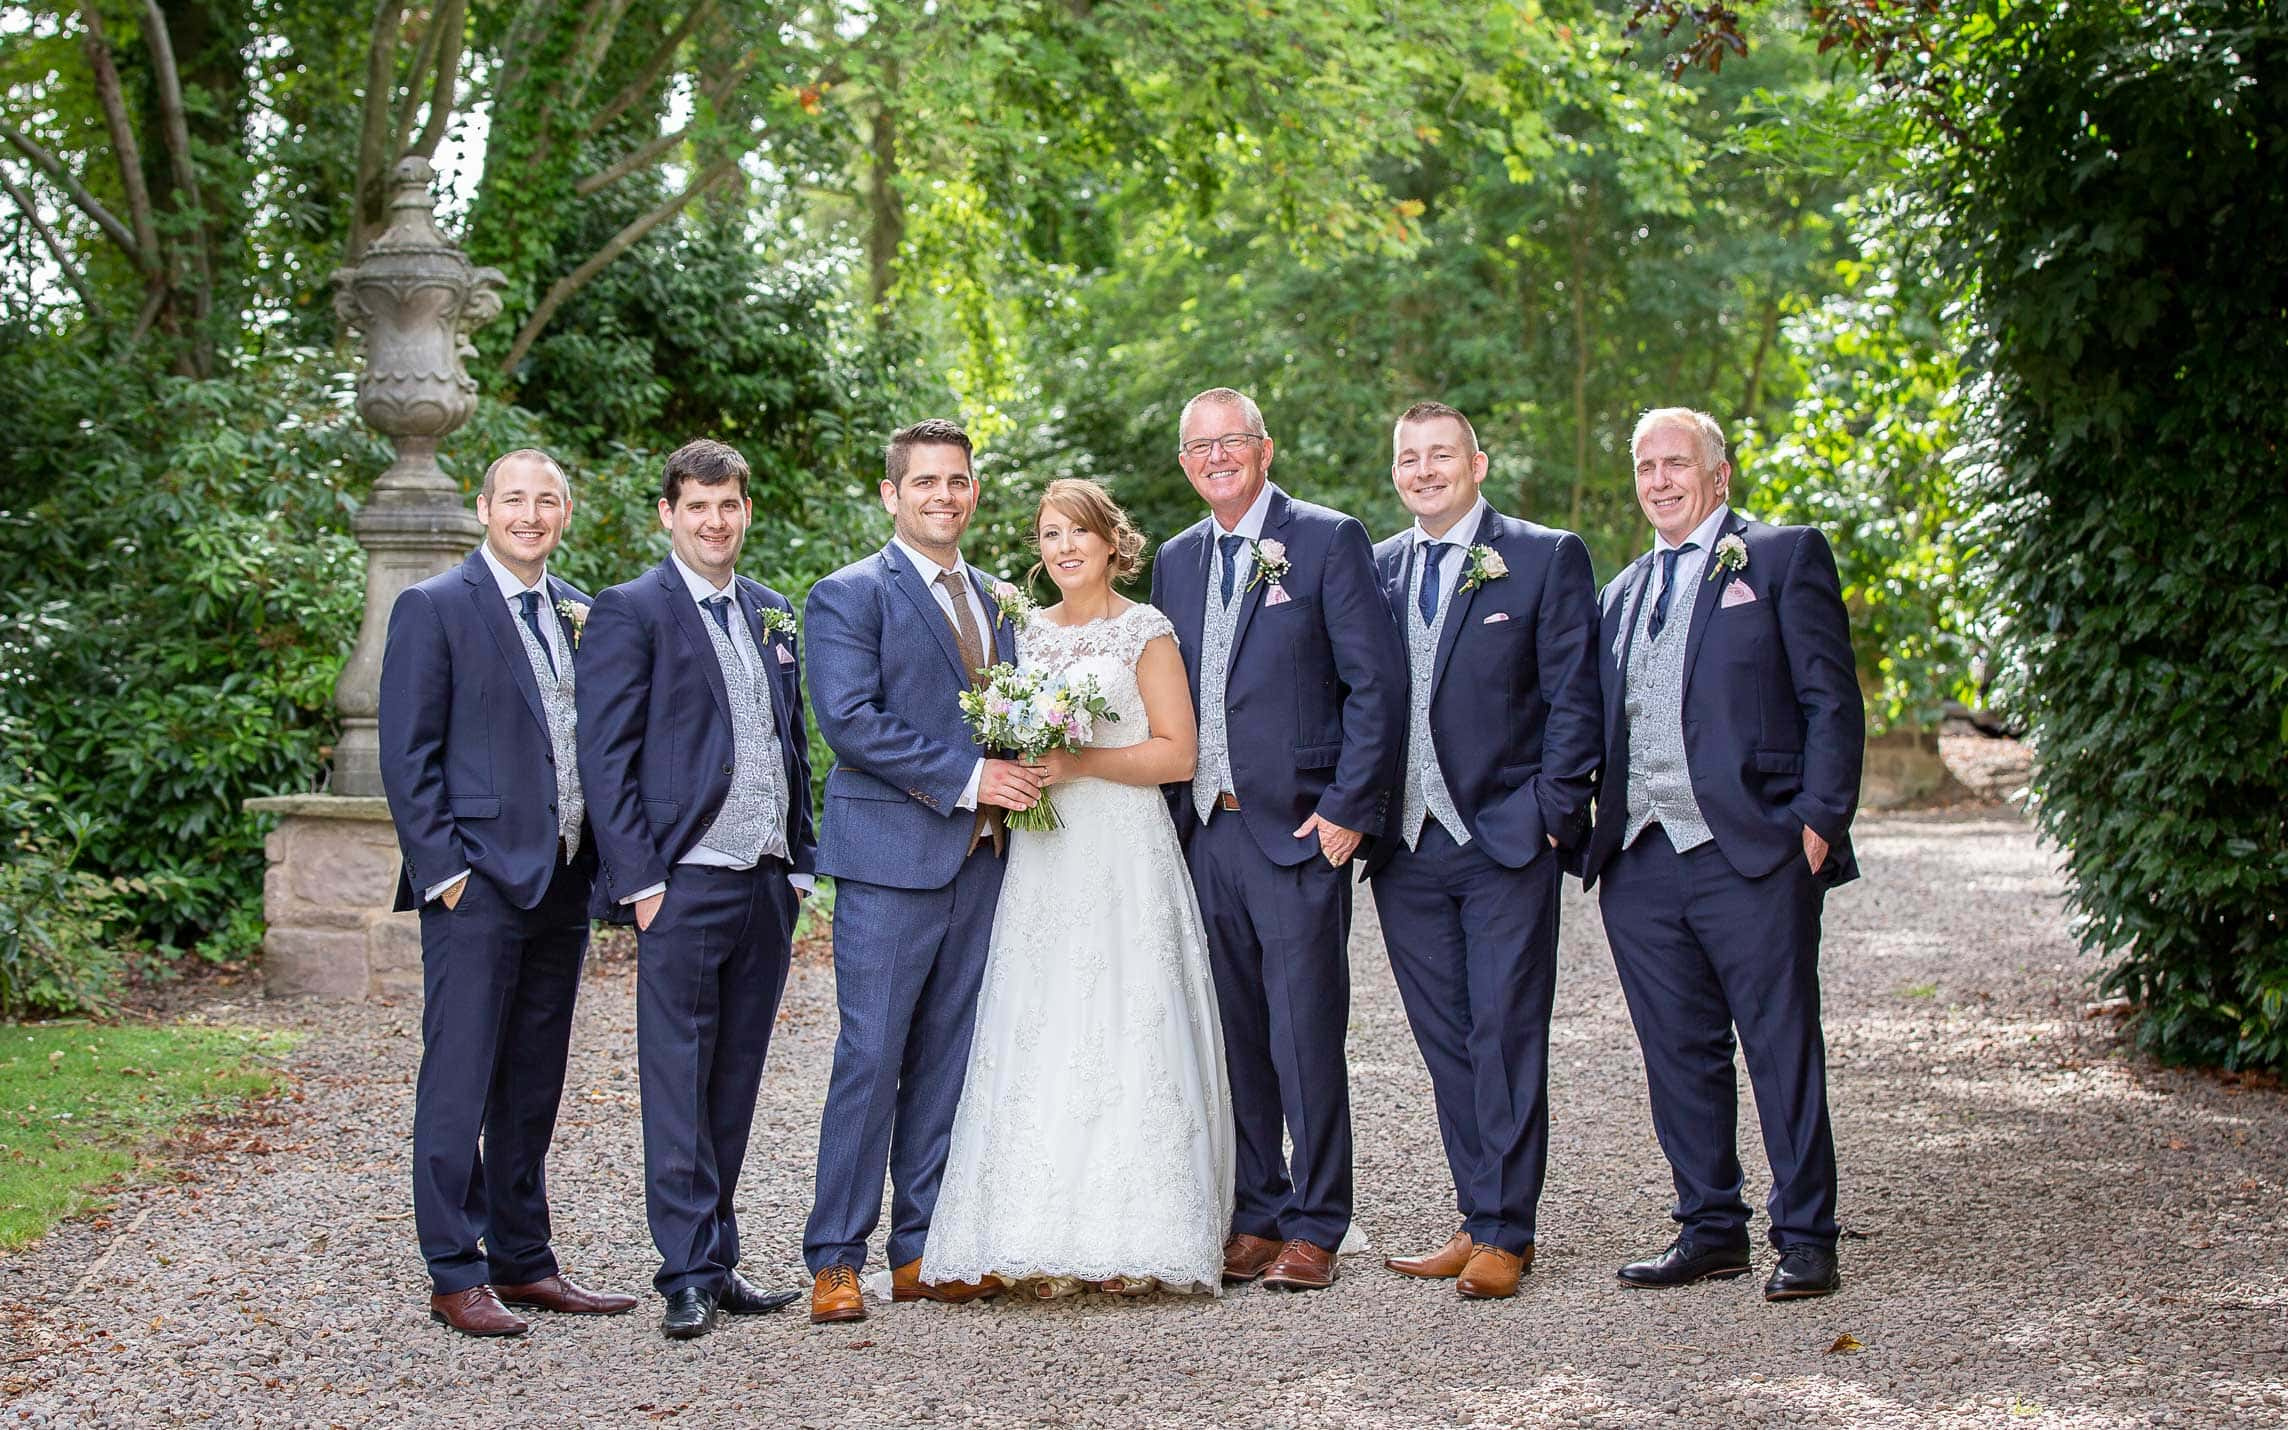 Wedding photo of the bride and groom with the grooms men